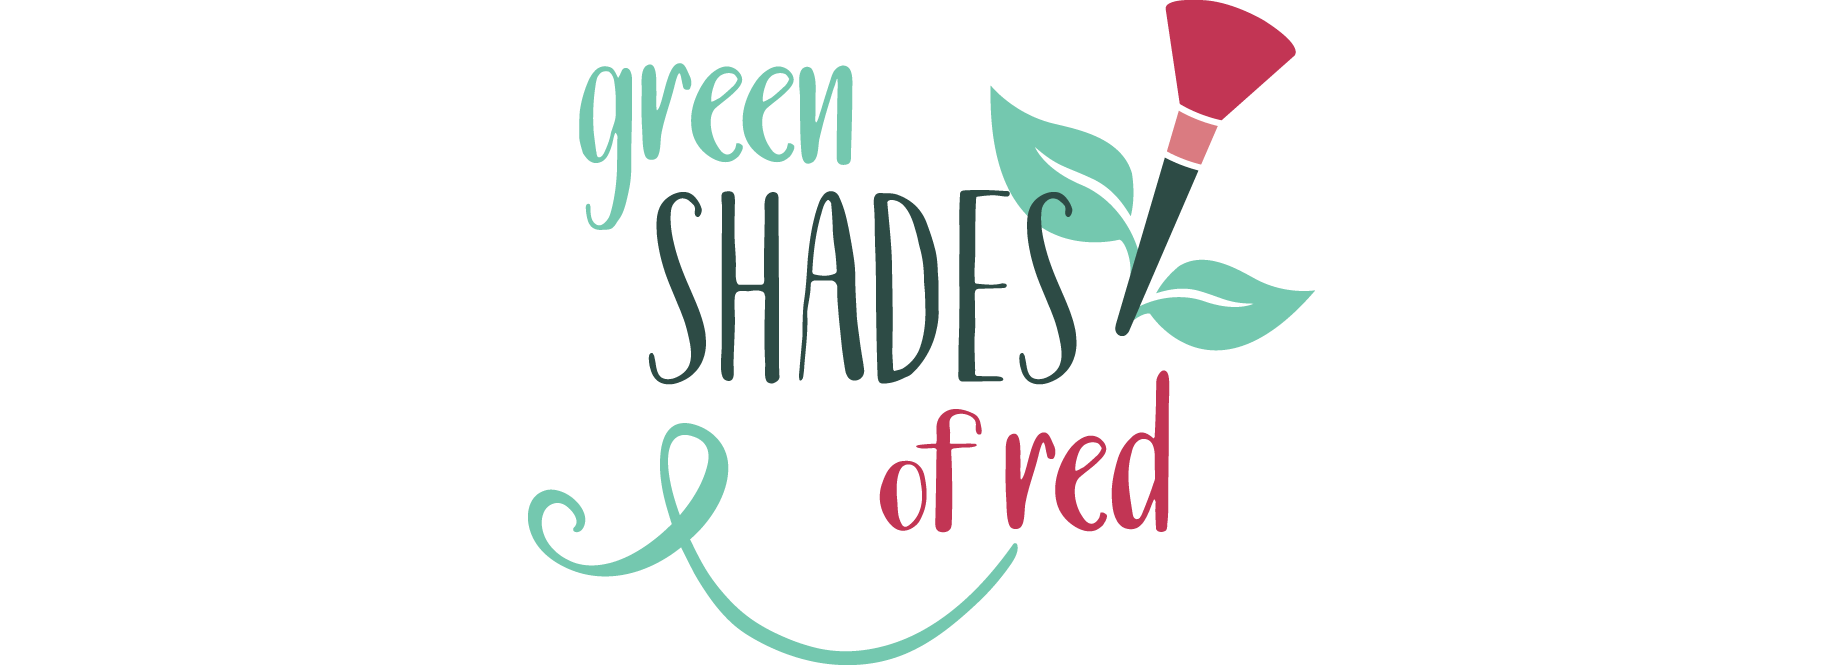 Green Shades of Red